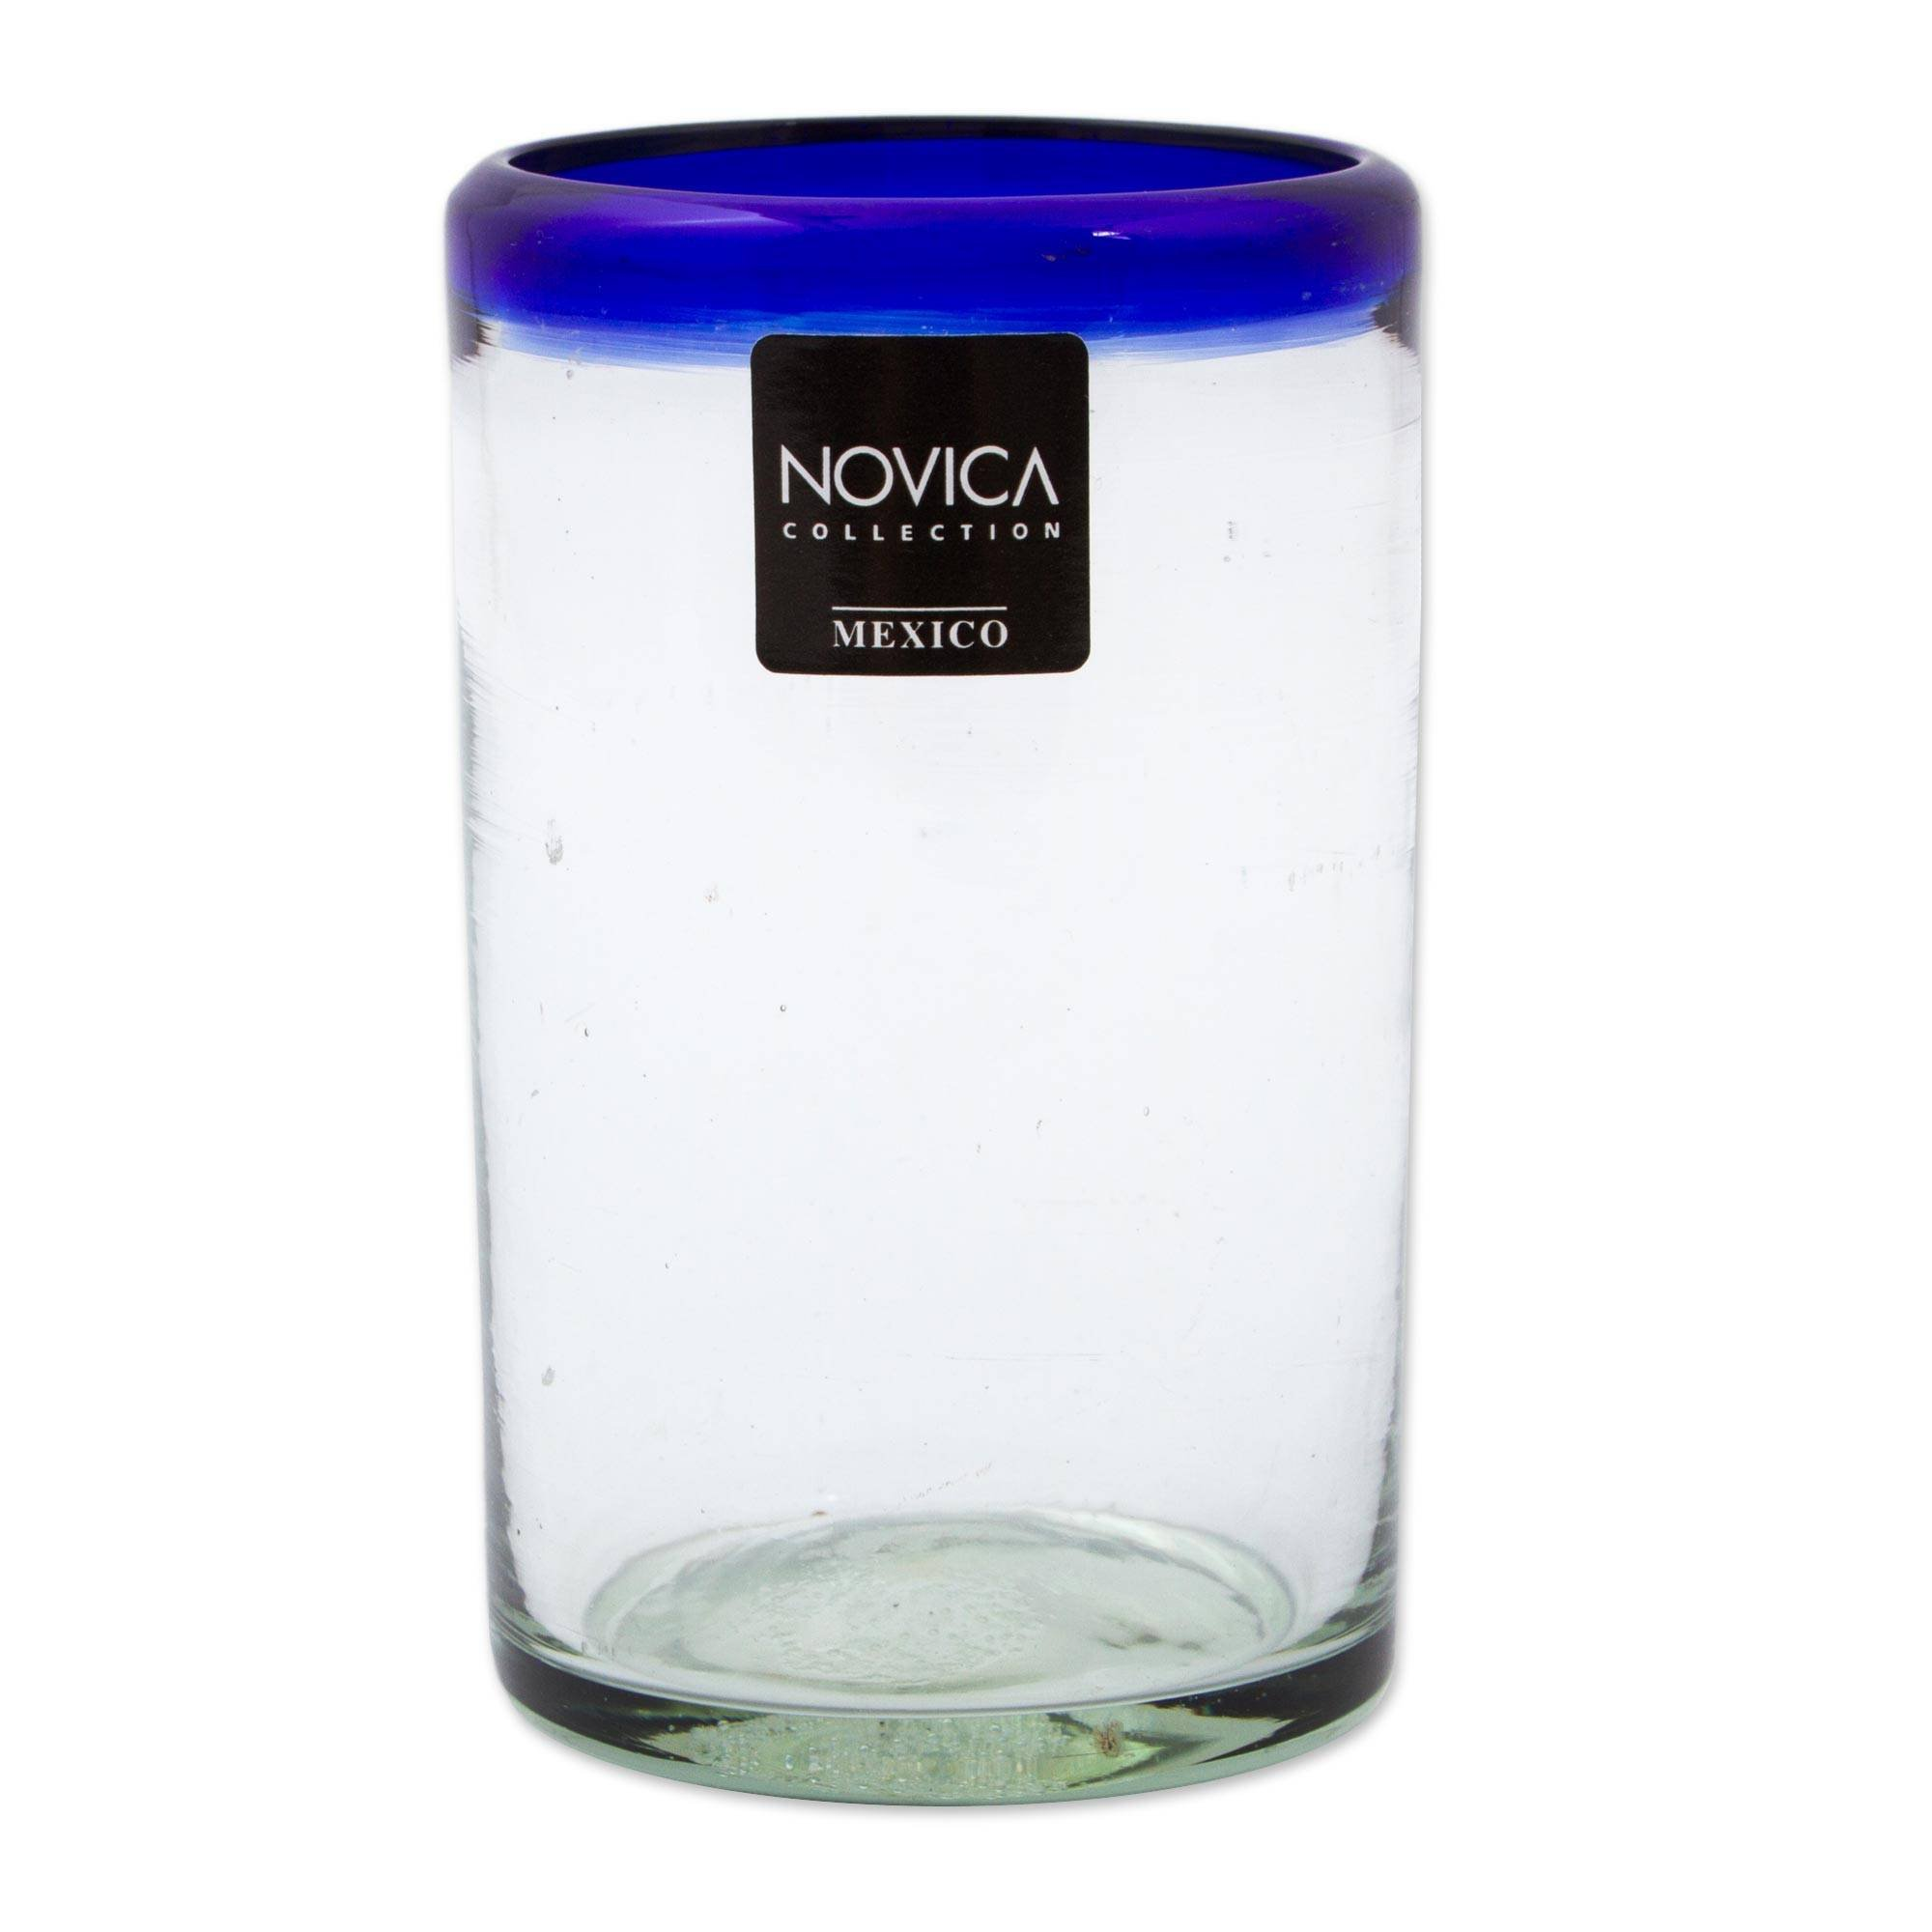 NOVICA Artisan Crafted Hand Blown Clear Blue Rim Recycled Glass Juice Glasses, 8 oz. 'Cobalt' (set of 6) by NOVICA (Image #4)